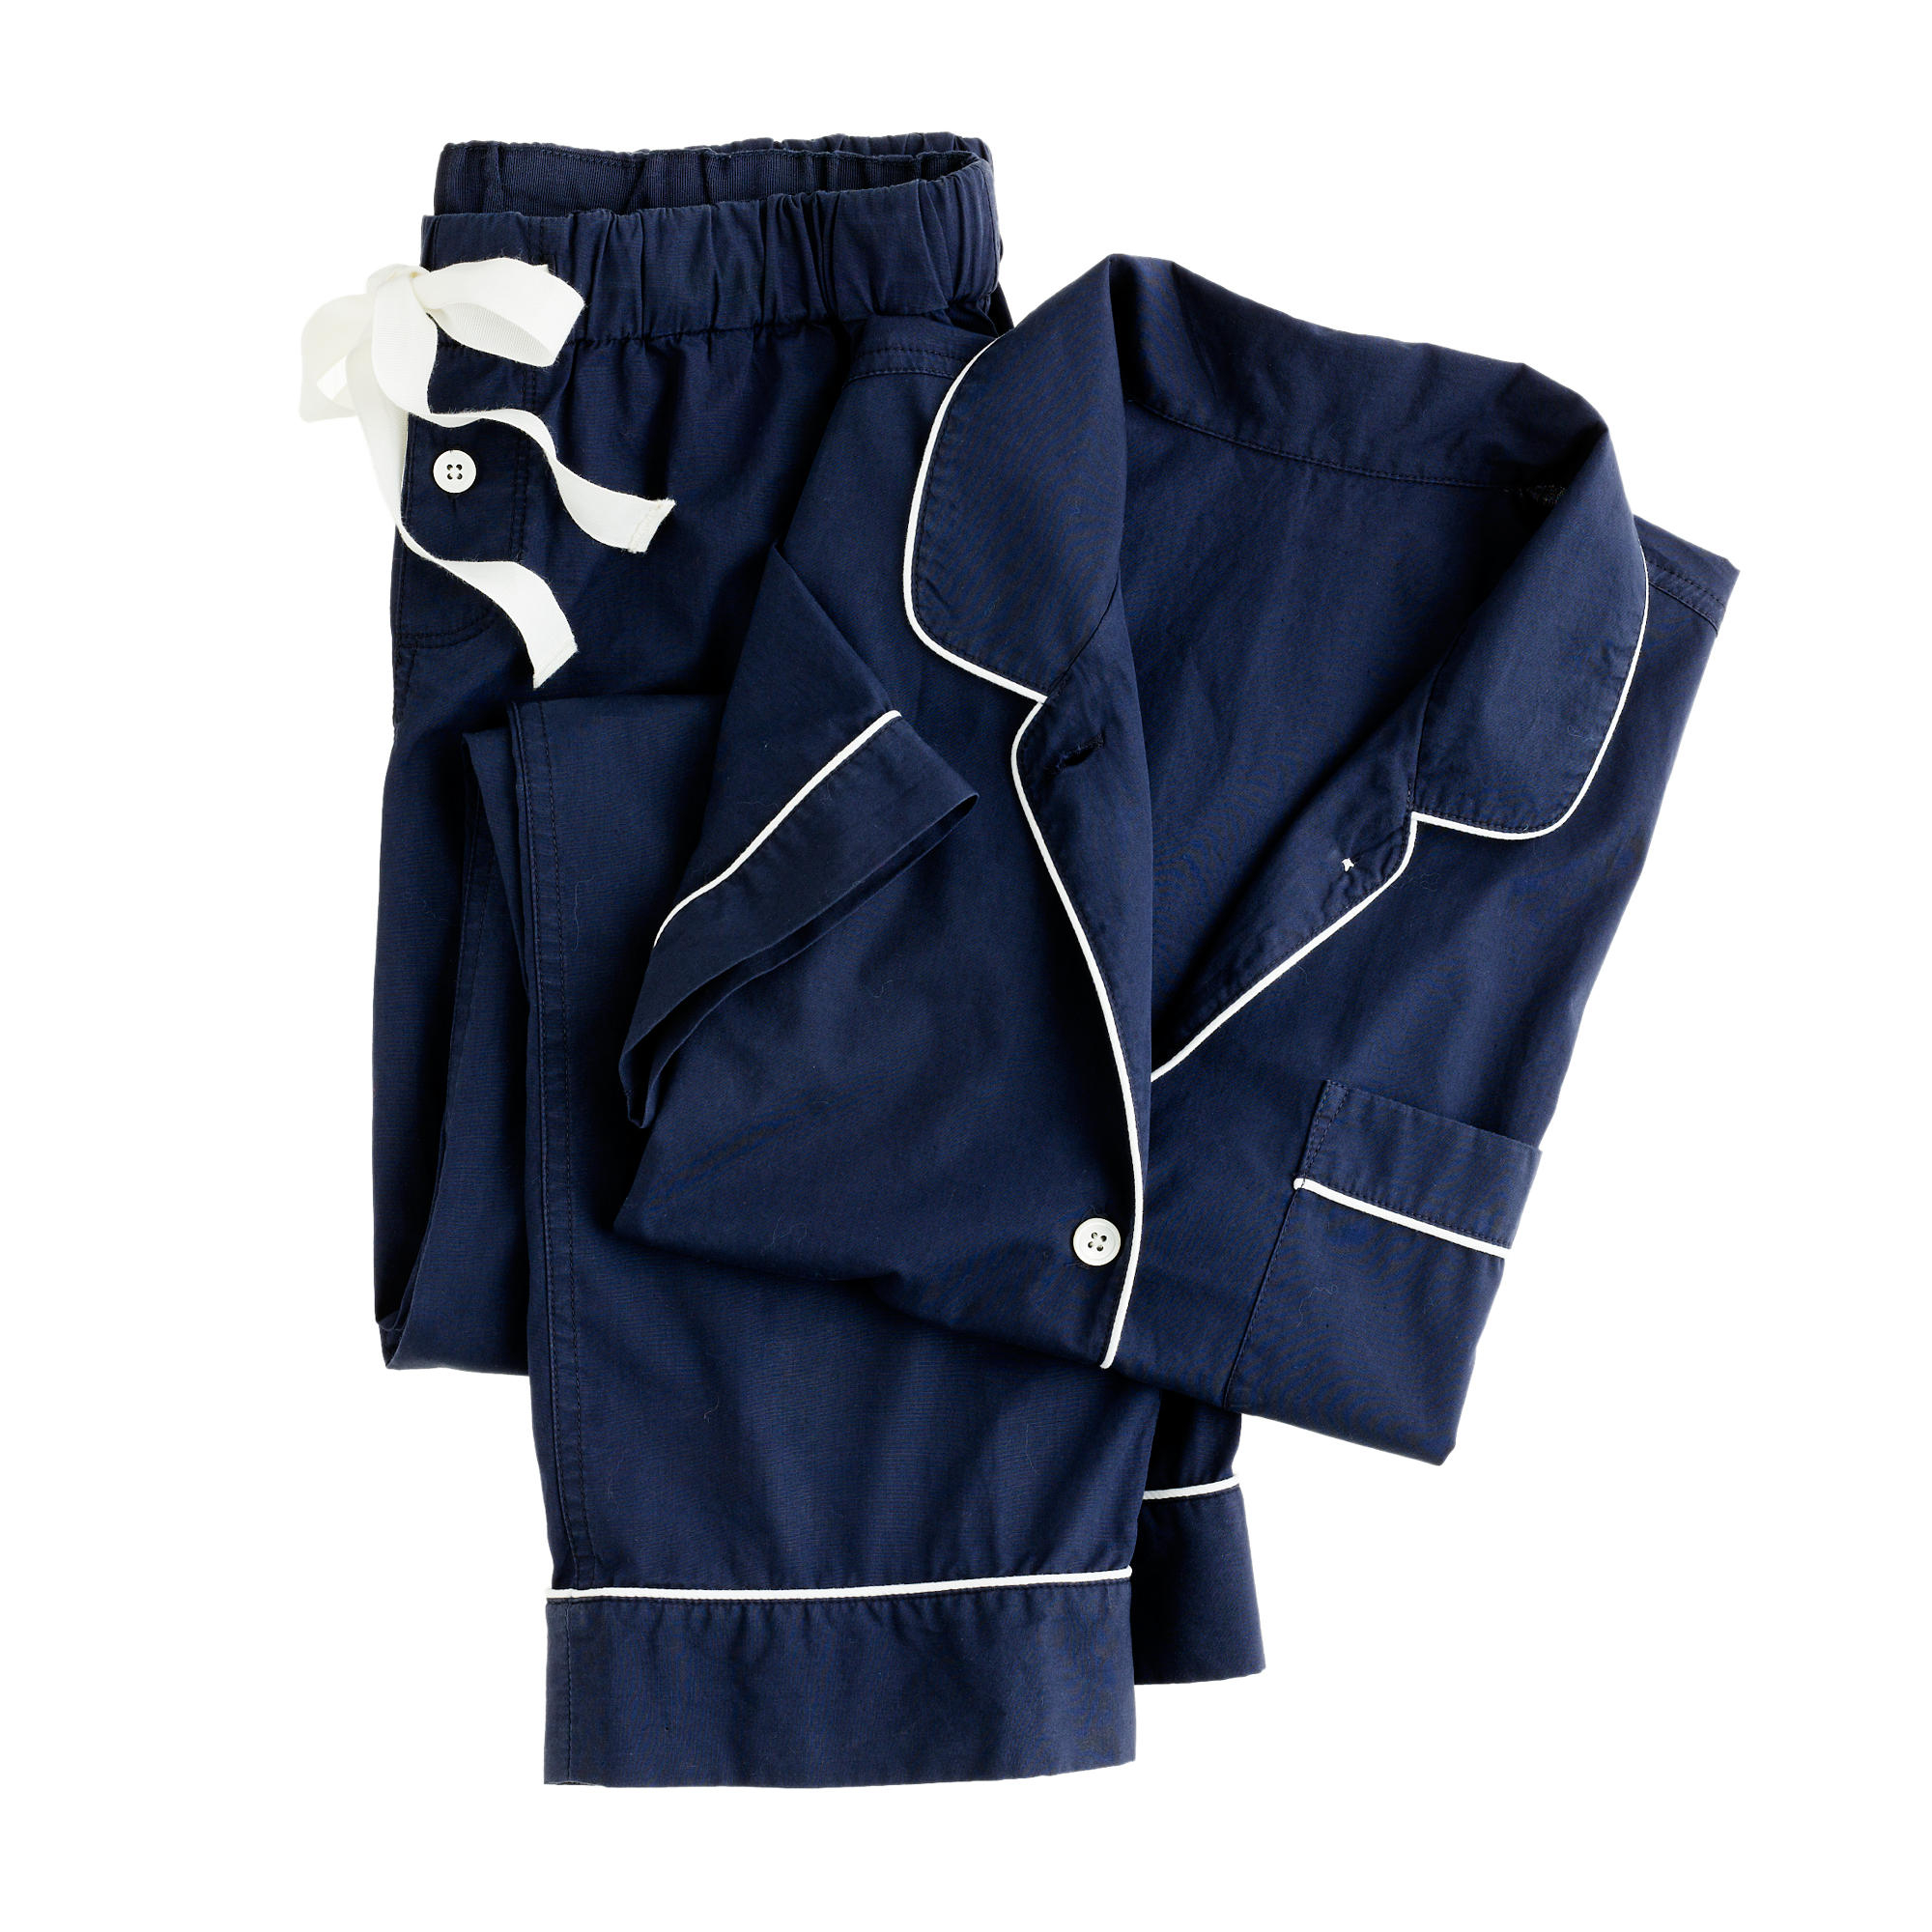 Cotton Pajamas & Robes. Clothing & Shoes / Women's Clothing / Intimates / Pajamas & Robes. of Results. Ten West Apparel Womens Snap Front Short Sleeve Duster Robe. 14 Reviews. Women's Wild Violets PJ Set - Pajama Top and Lounge Pants. 3 Reviews.